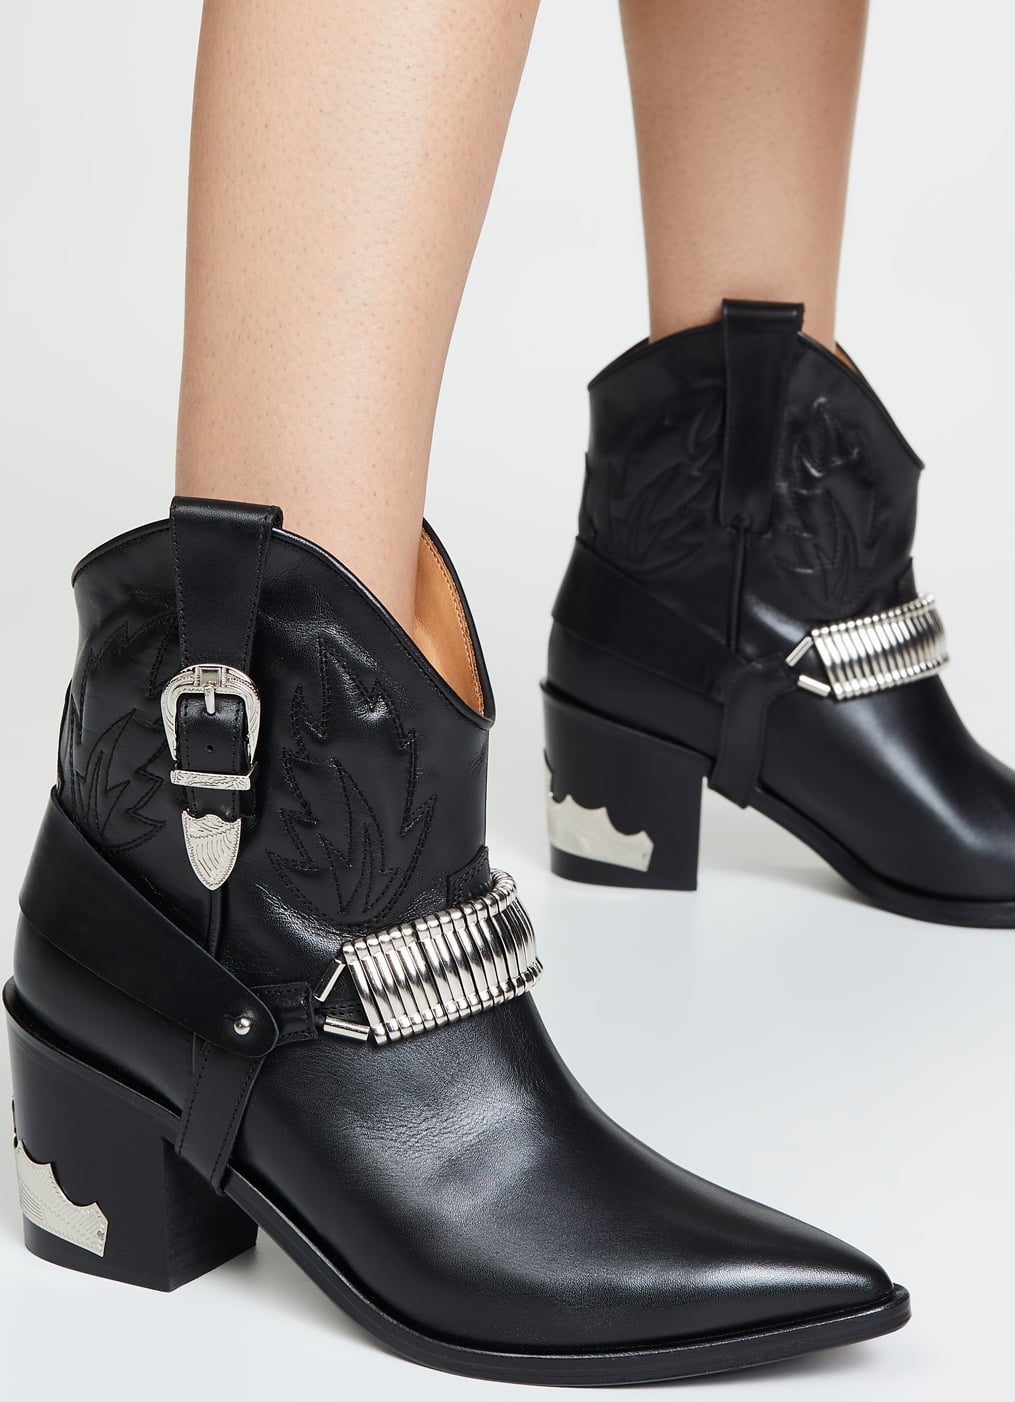 A boldly modern take on a classic cowboy boot, these black buckled booties add a harness strap and eye-catching hardware to a must-have Western style